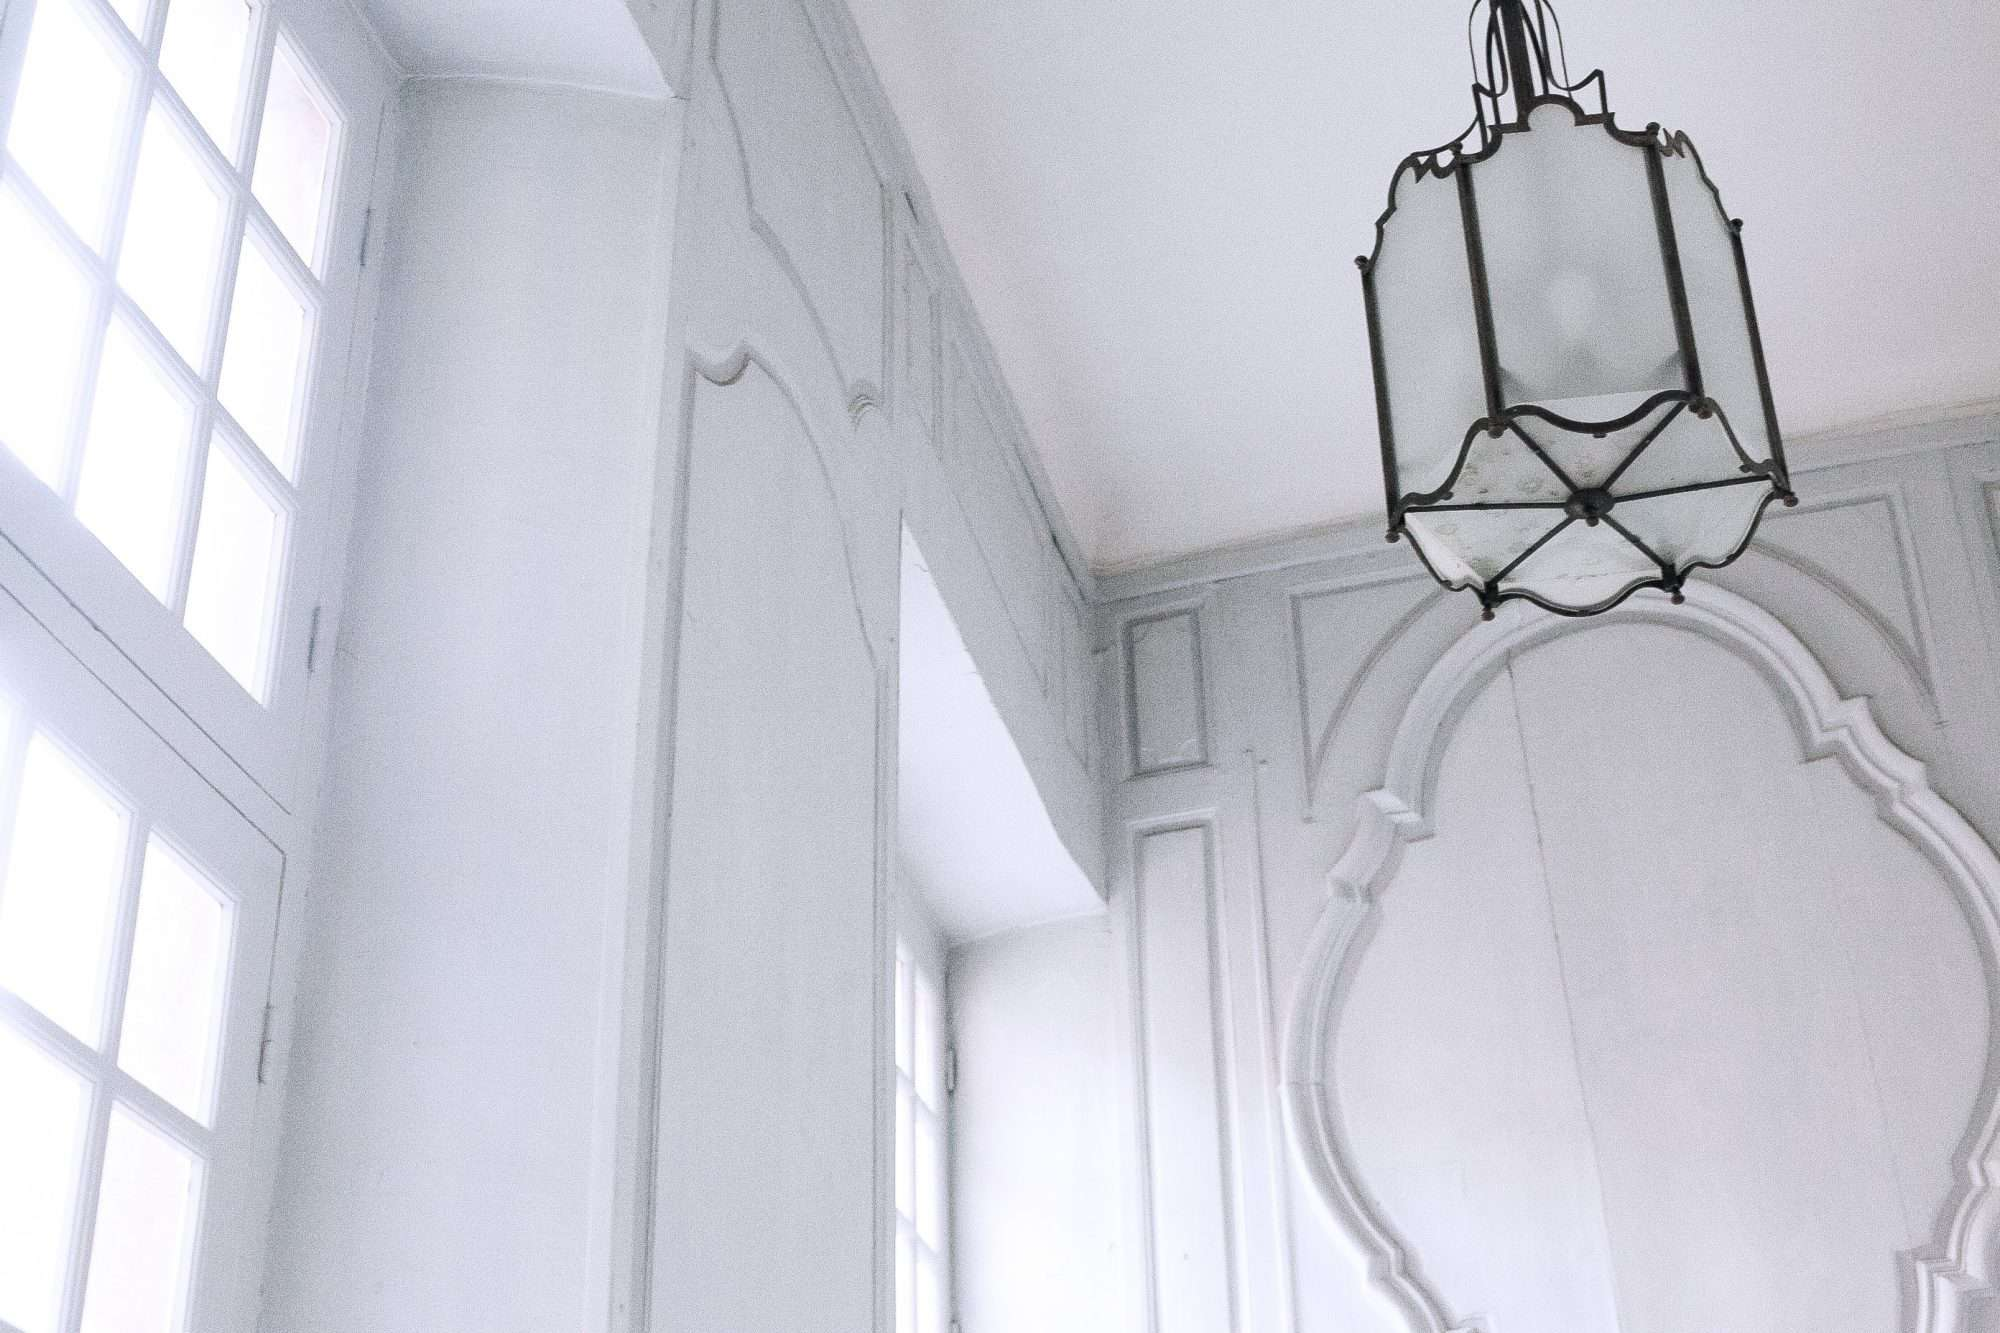 Are you lucky enough to have high ceilings?